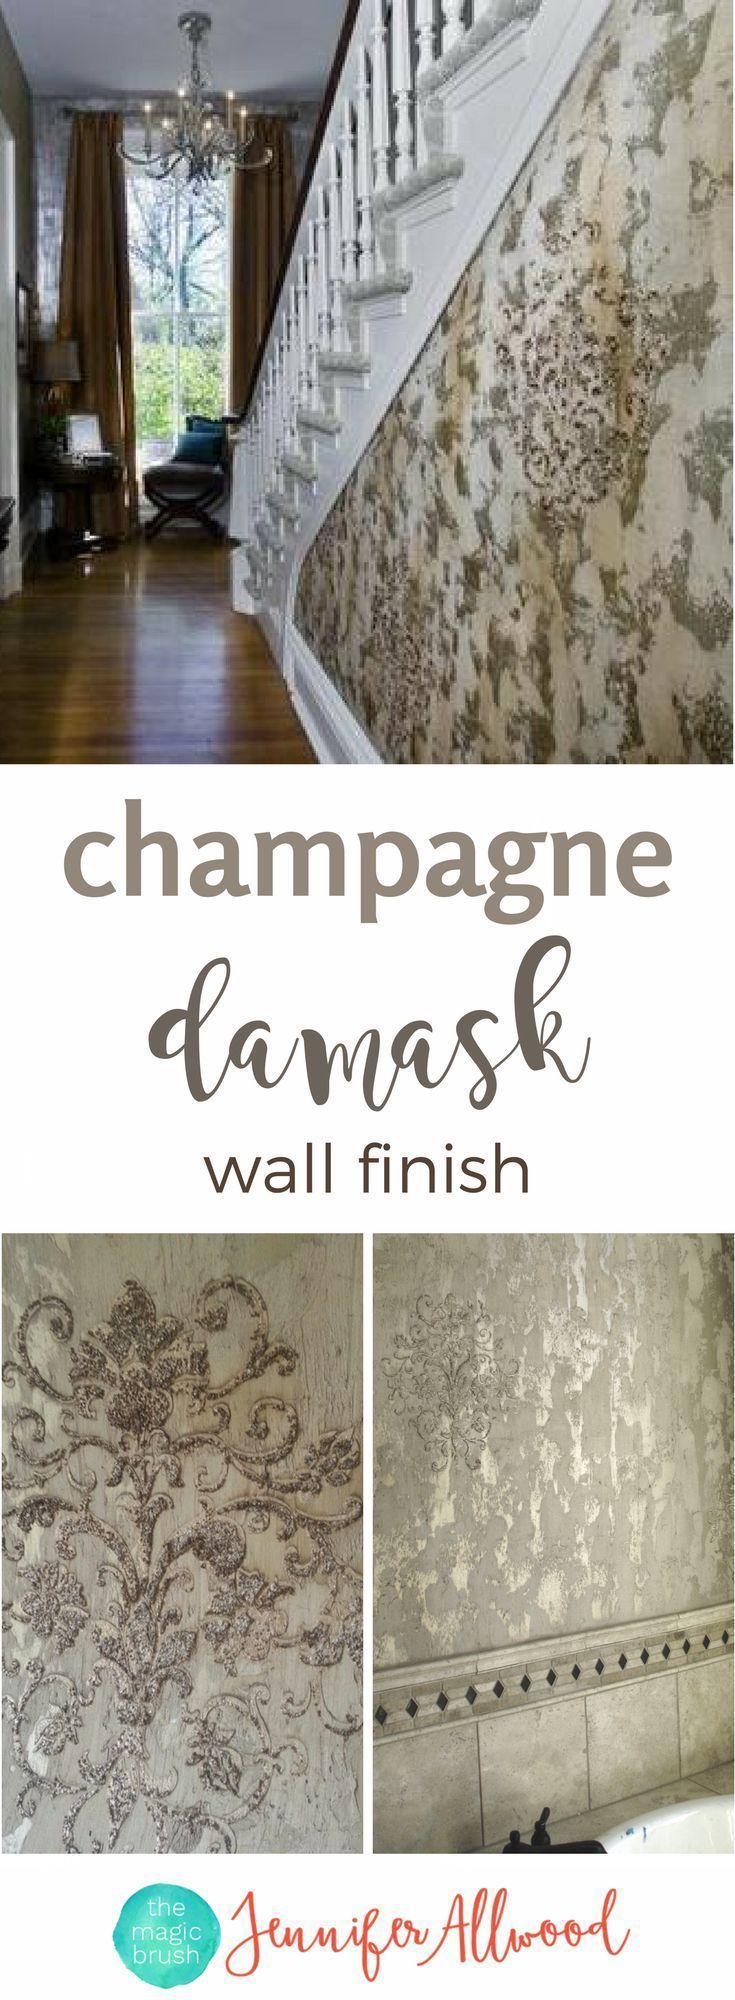 Info's : Learn to paint this Gorgeous Champagne Damask Wall Finish as an accent wall in bathrooms and bedrooms. It's rich faux finish that combines metallic/glitter, texture and stencil. Painting Tips & Tutorials by Jennifer Allwood of themagicbrushinclcom | Feature Wall Ideas + Accent Wall + Focal Wall #painting #paintfinishes #wallfinishes #homedecor #DIY #DIYhomedecor